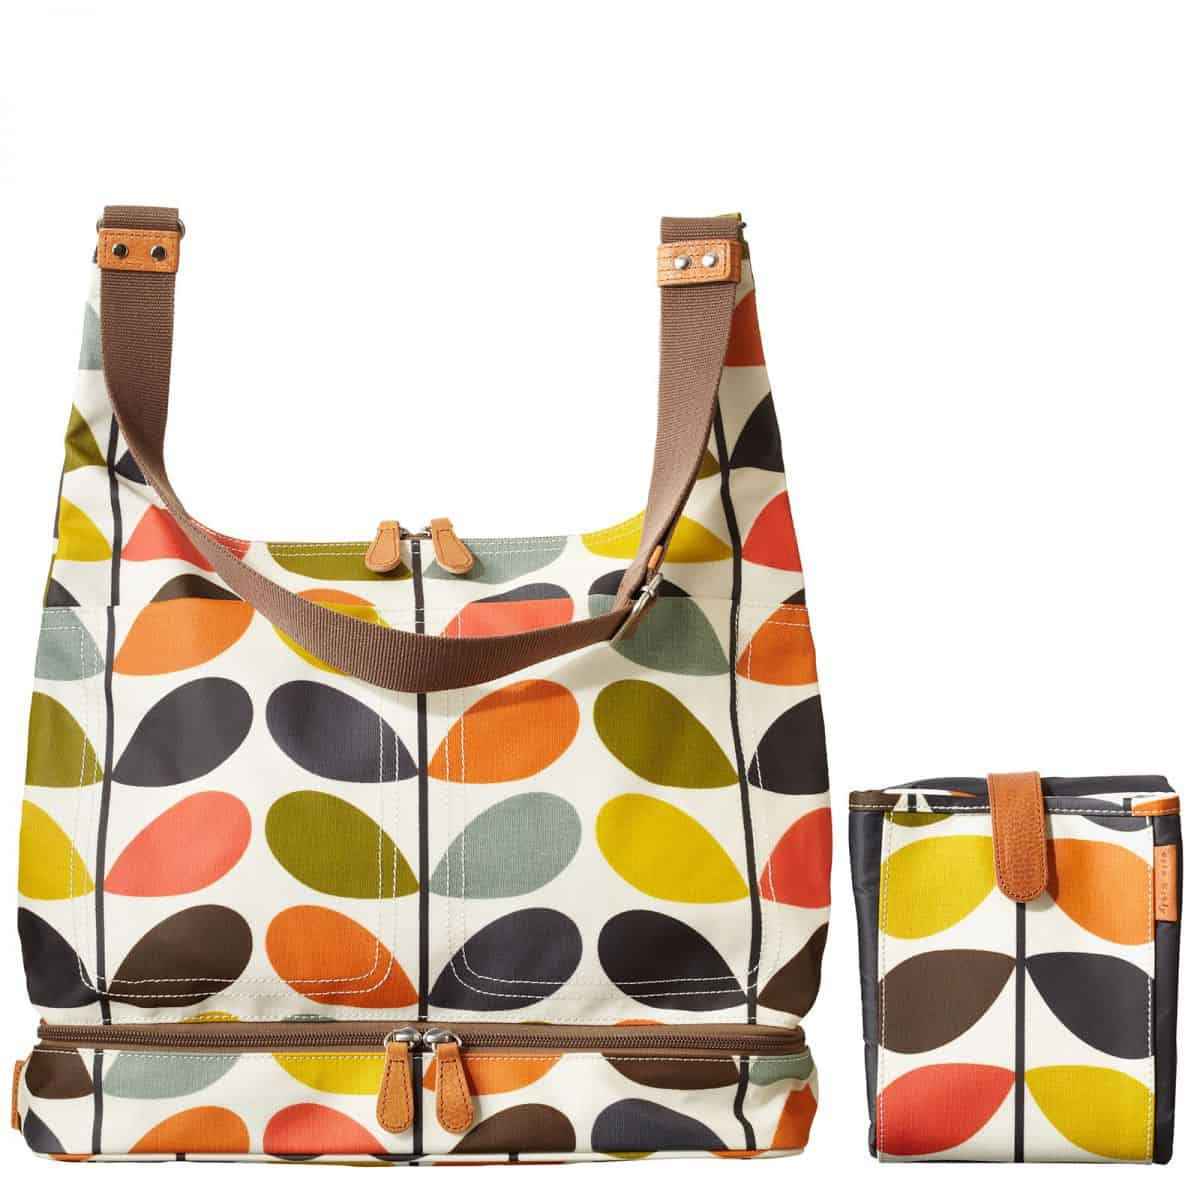 28740e8deef Orla Kiely Baby Changing Bag in Multi-Stem  244. My all-time favorite  designer Orla Kiely features her iconic multi-stem print on this laminated  canvas ...